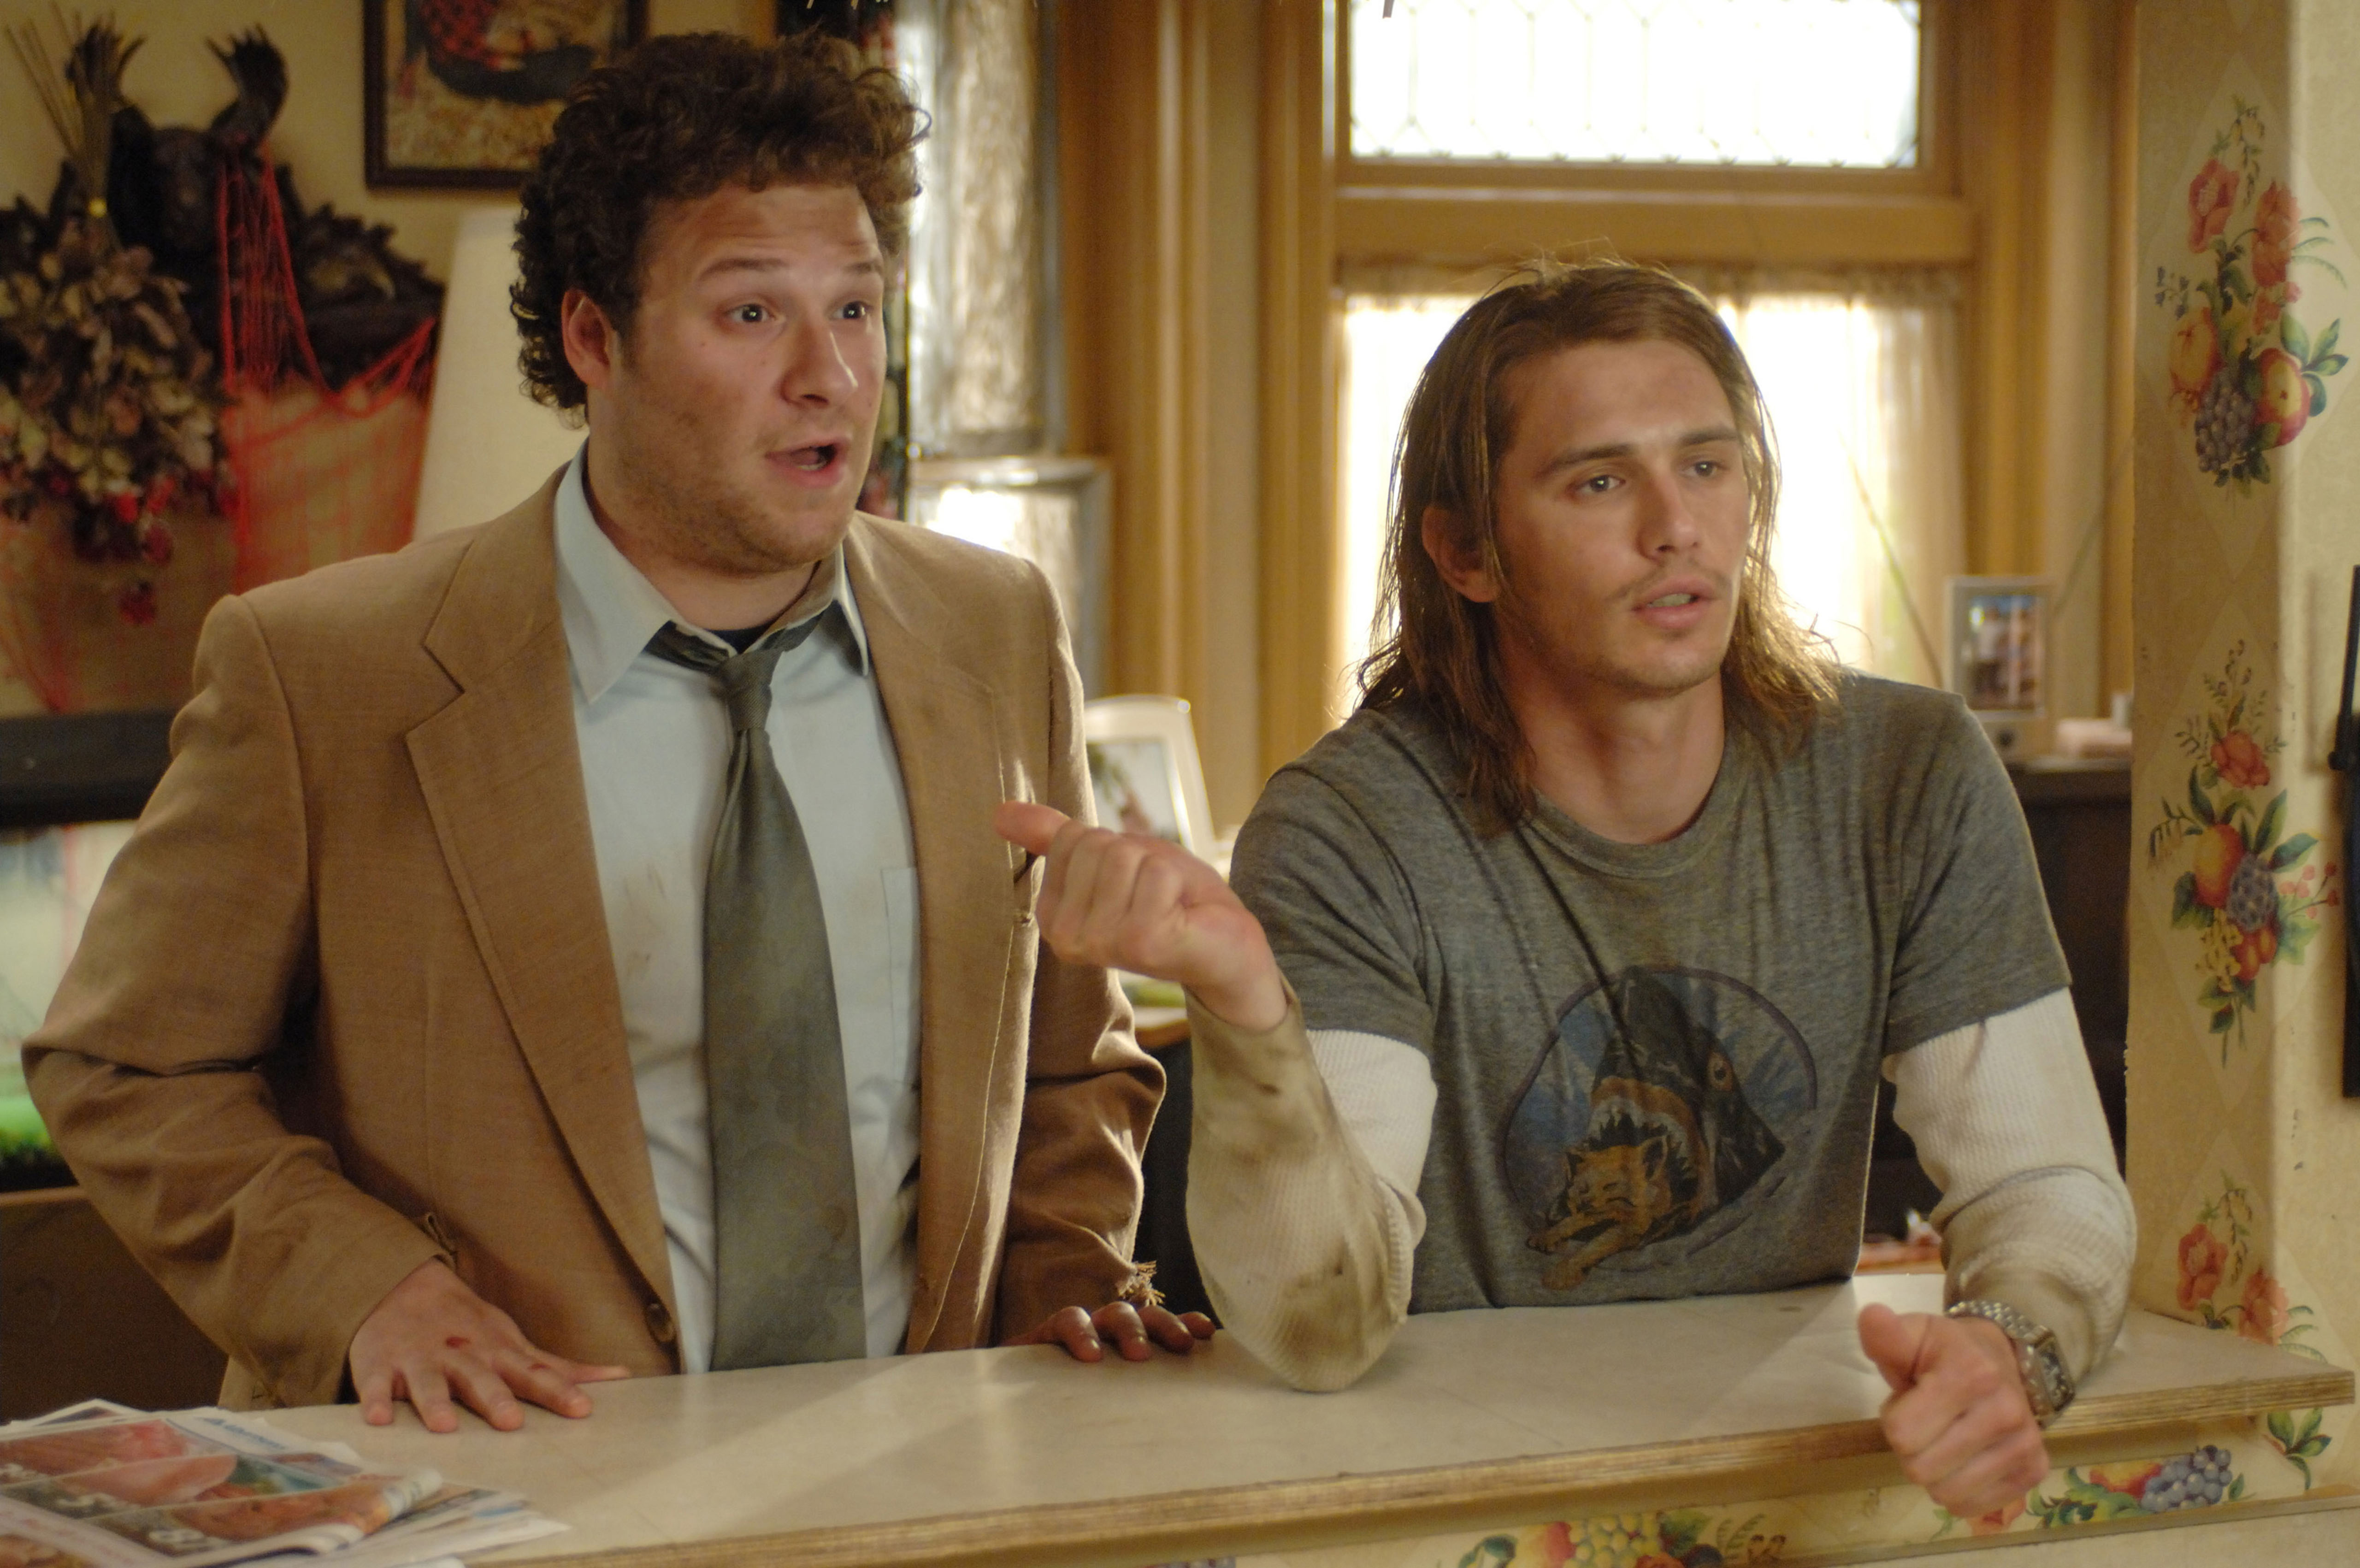 'Pineapple Express' 10th Anniversary: Seth Rogen Rolled 100 Joints for the Movie and 16 More Facts You Don't Know